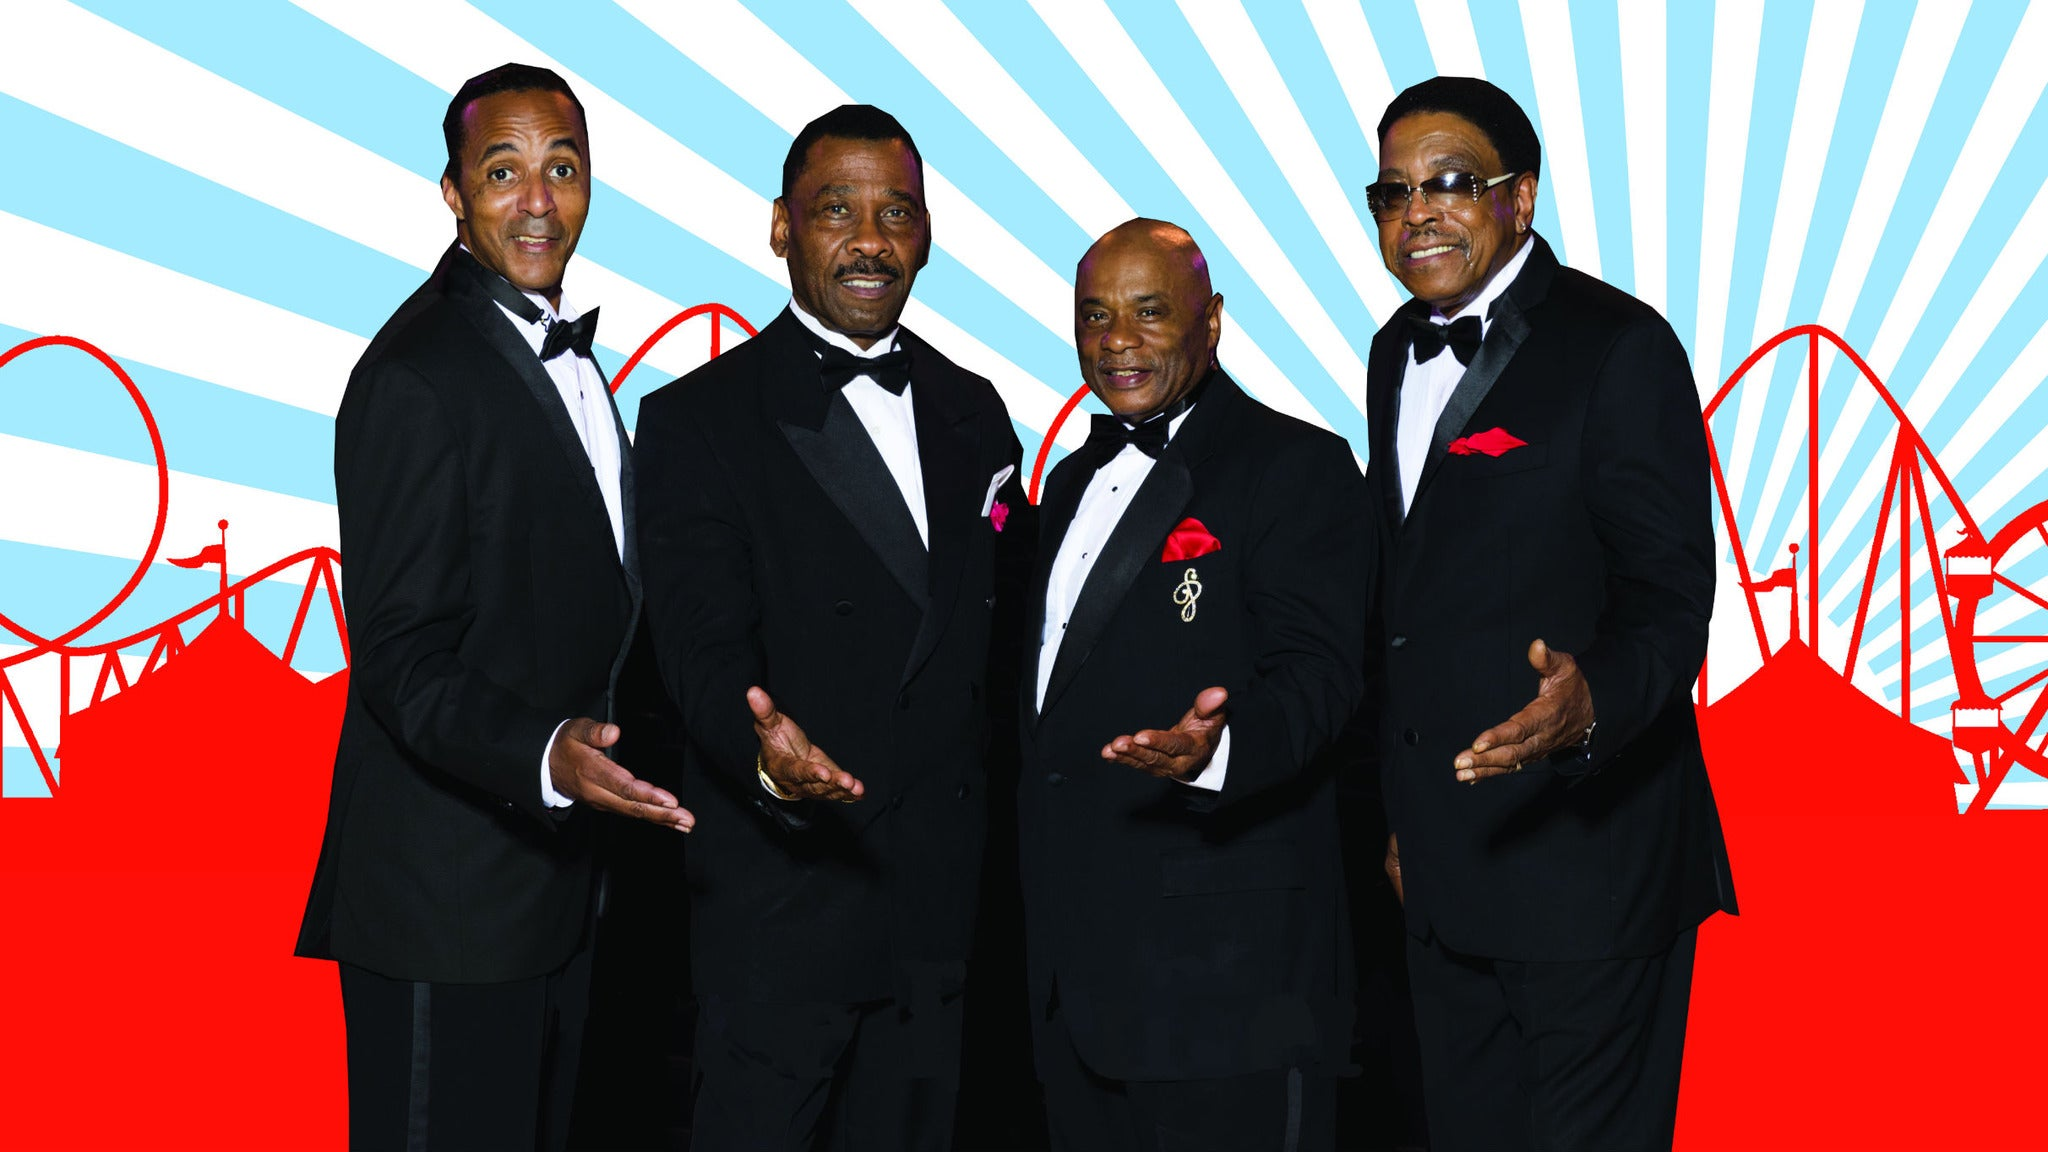 The Drifters at Adler Theatre